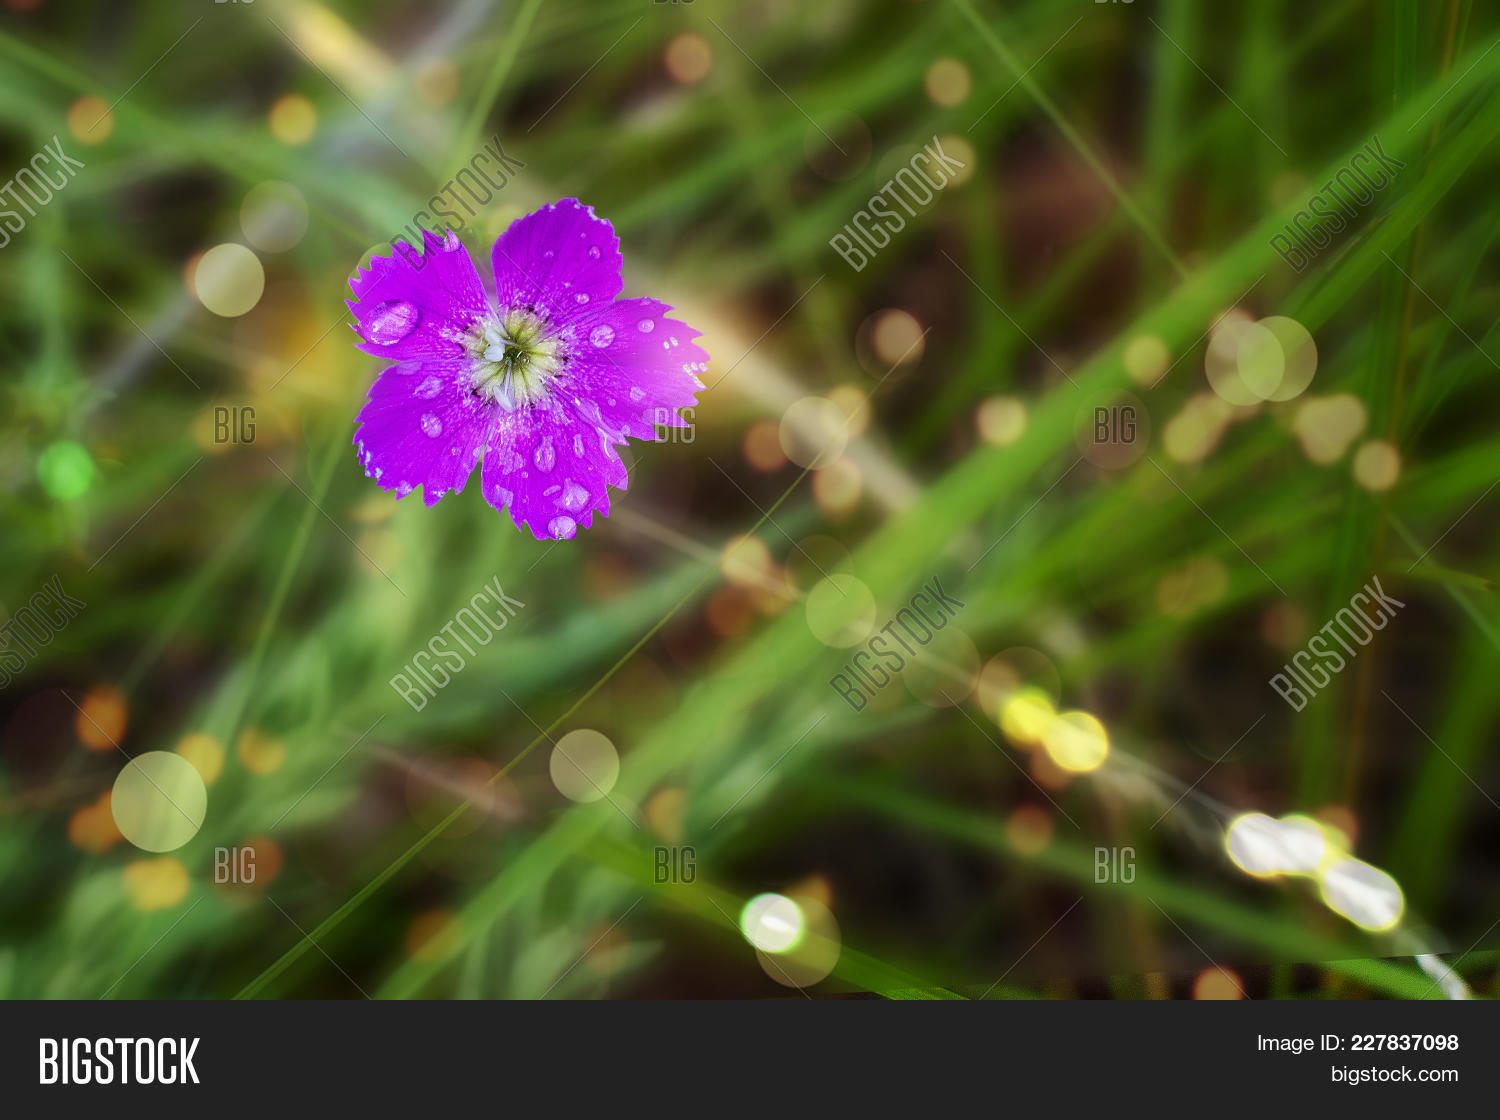 Purple Flower Dew Image Photo Free Trial Bigstock